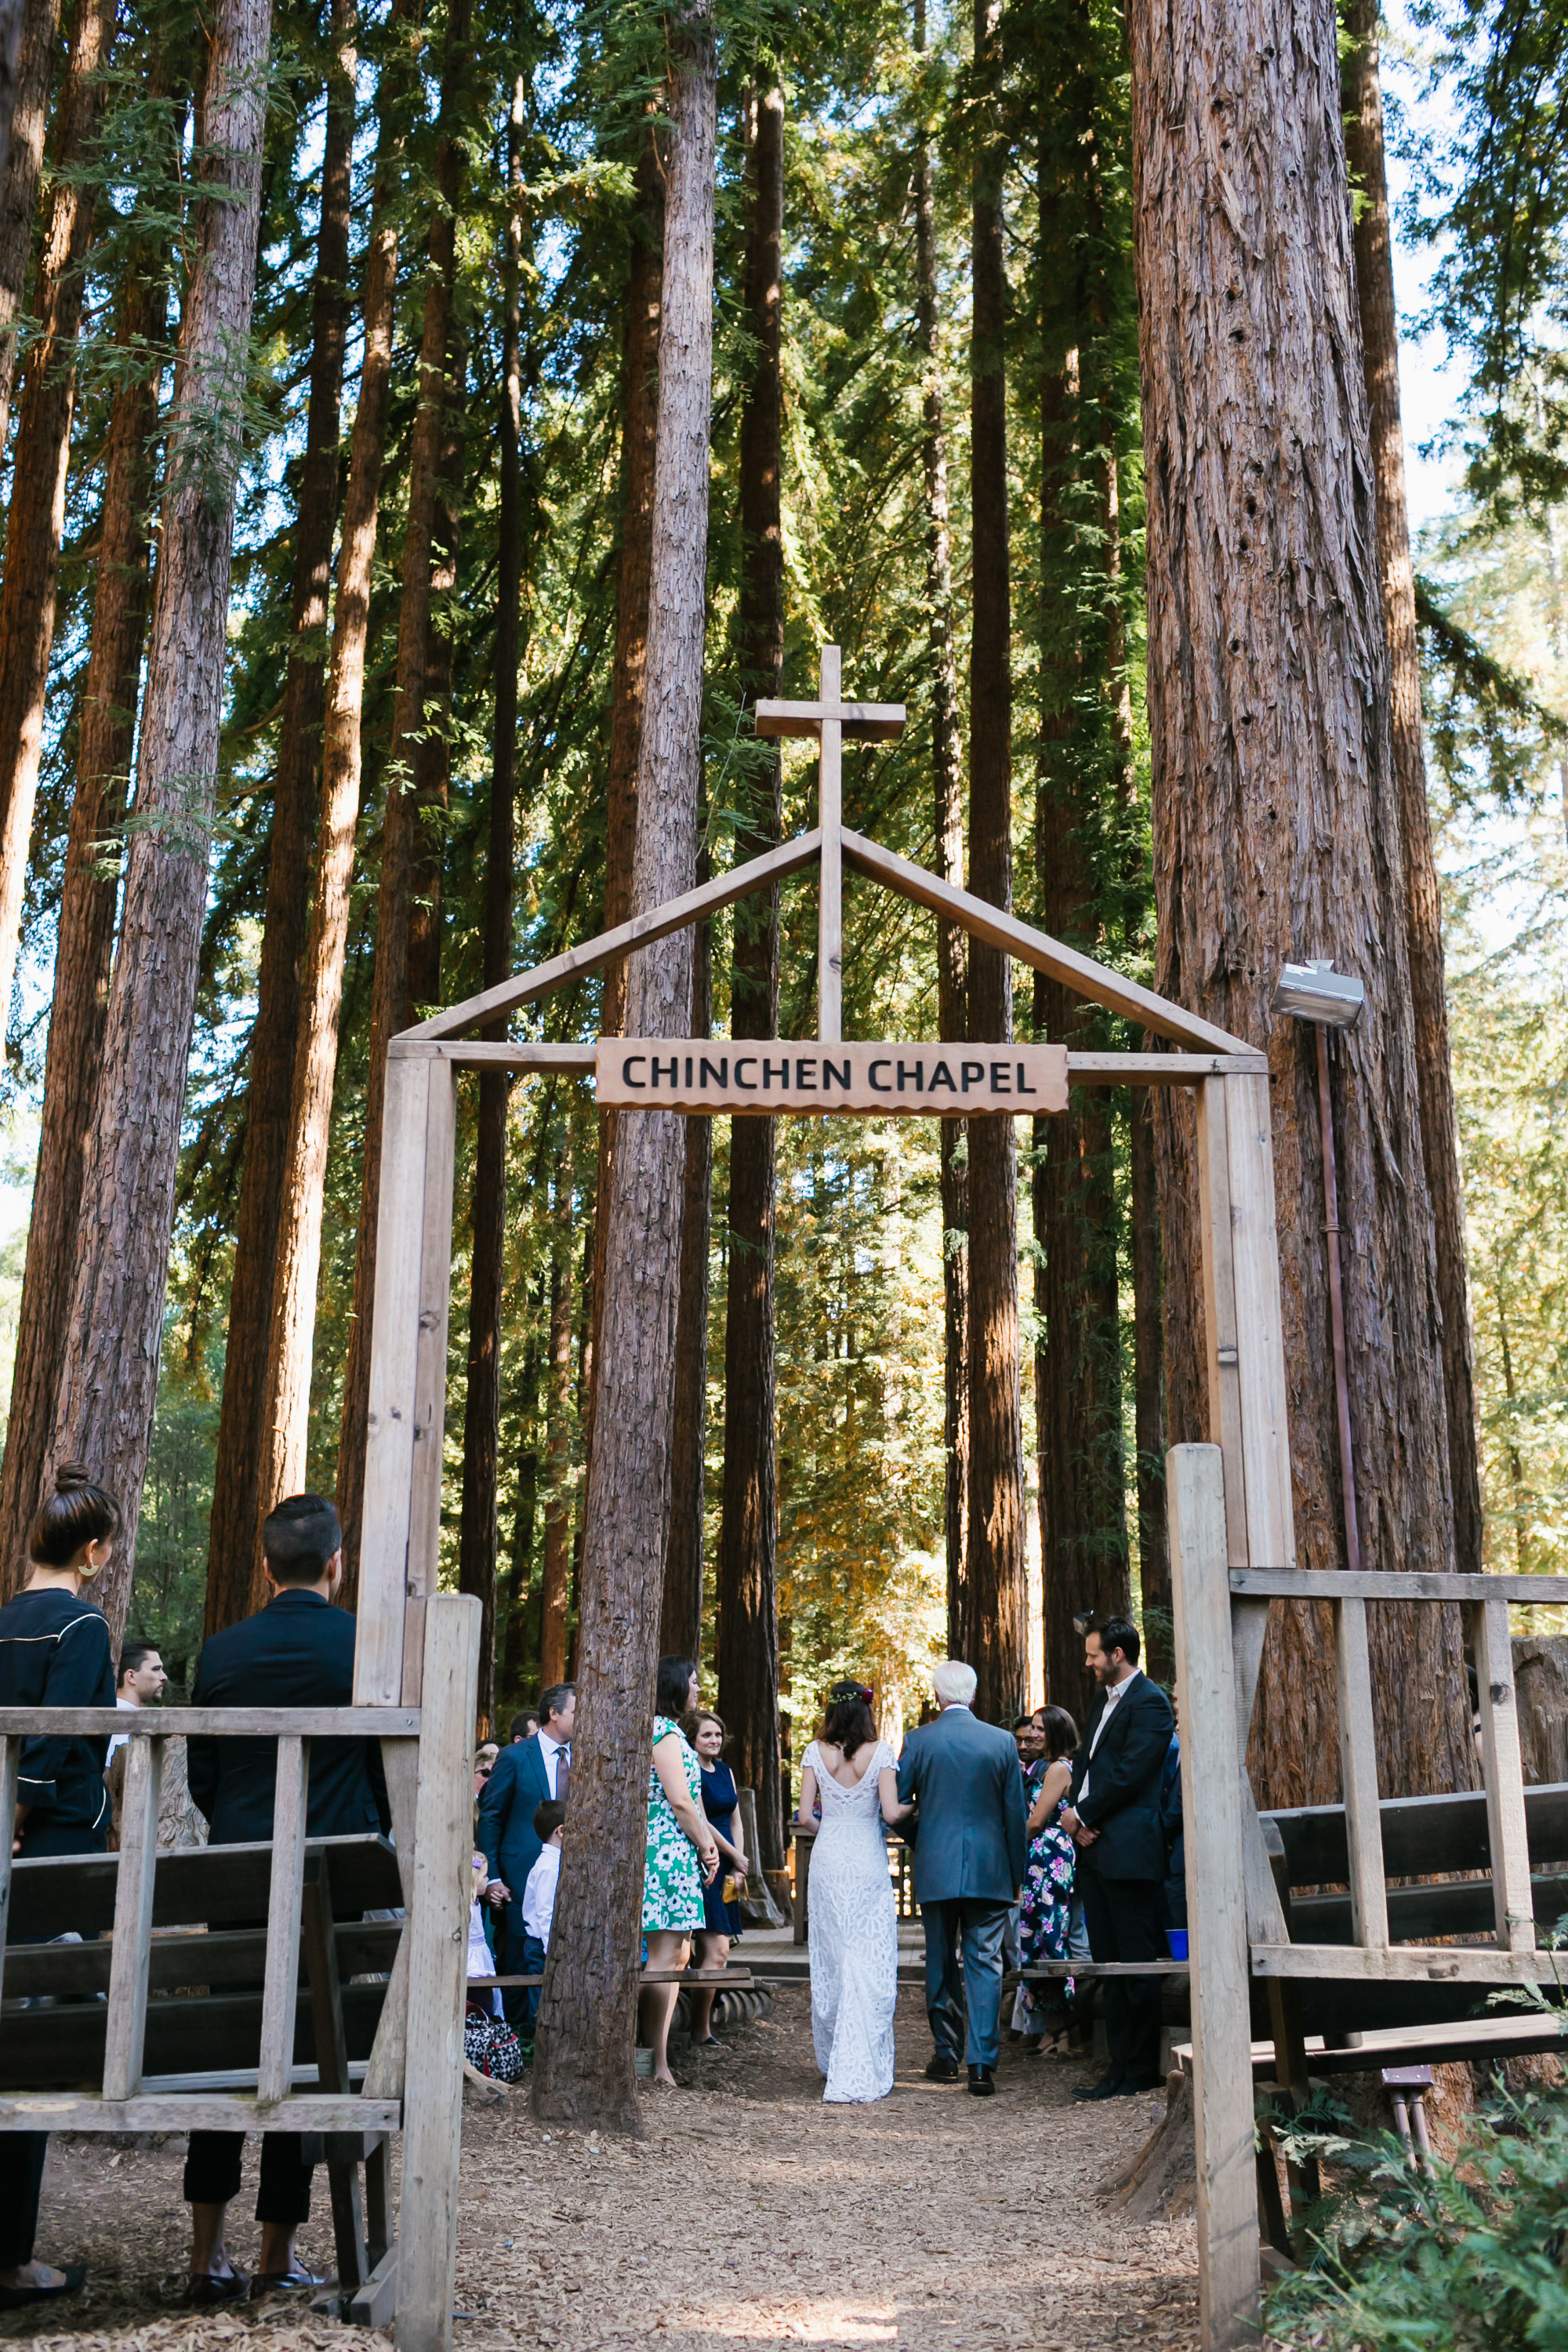 Bride and her father walk into the wedding ceremony in outdoor chapel